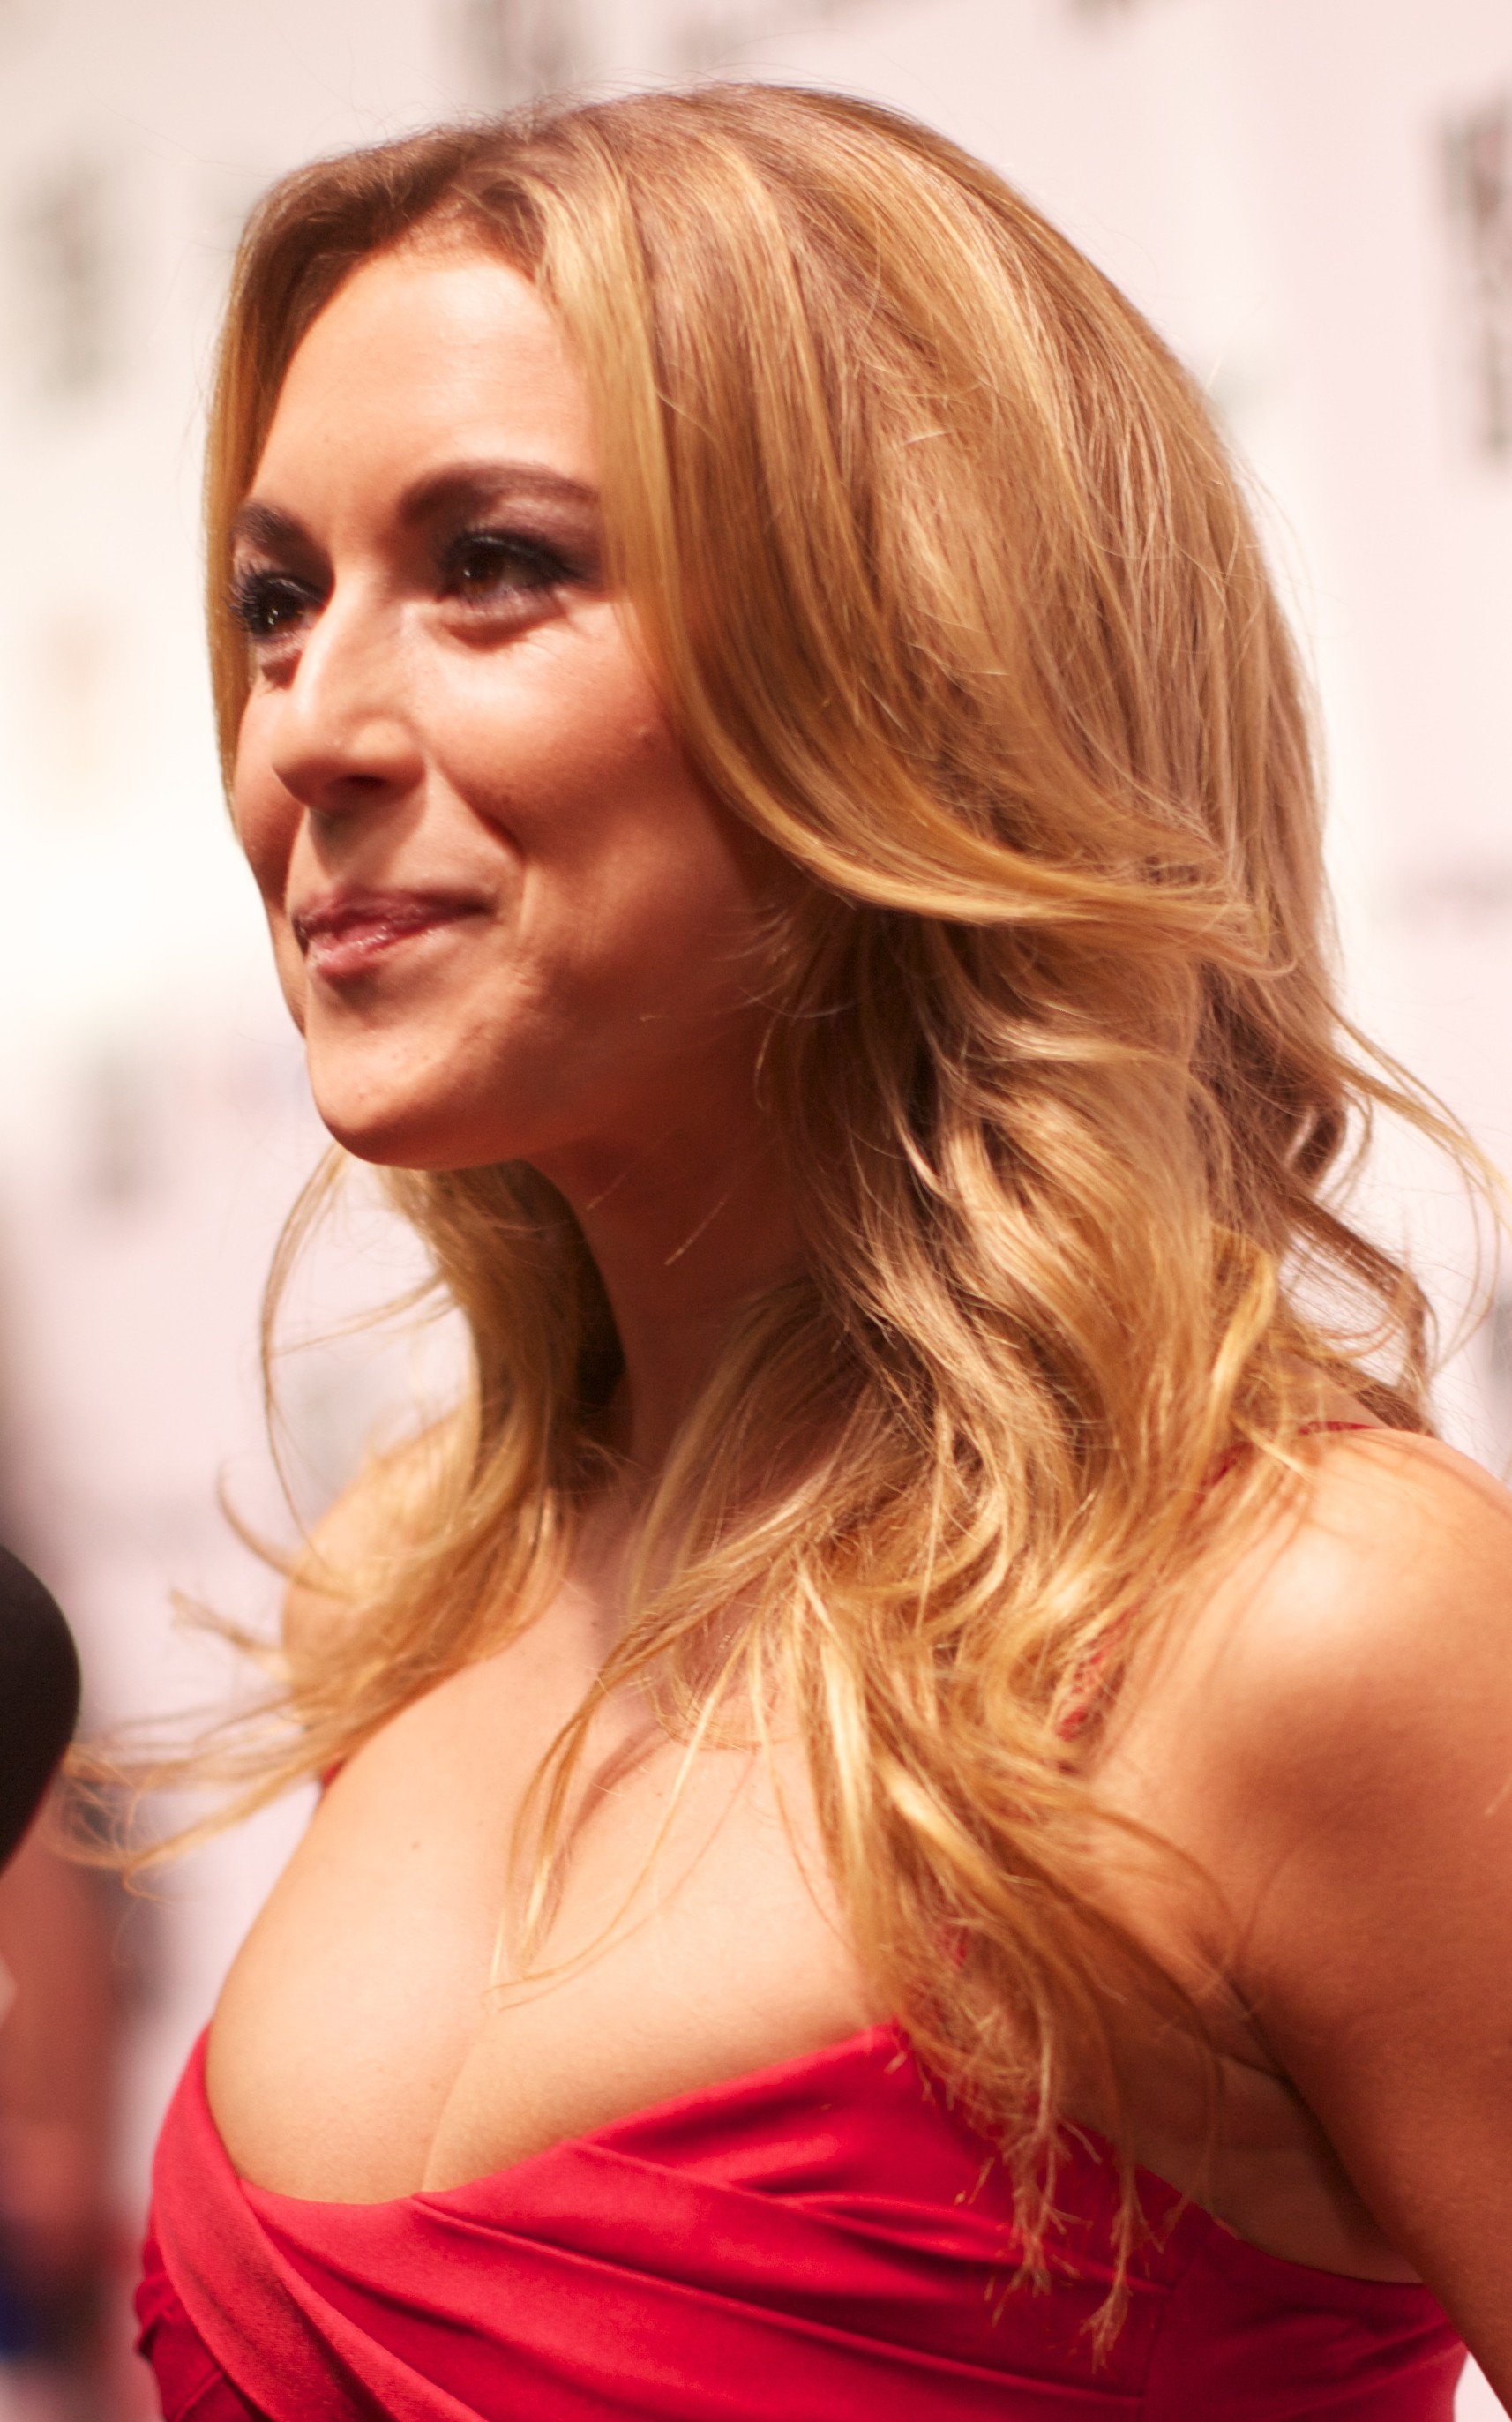 Alexa PenaVega - Wikipedia, the free encyclopedia